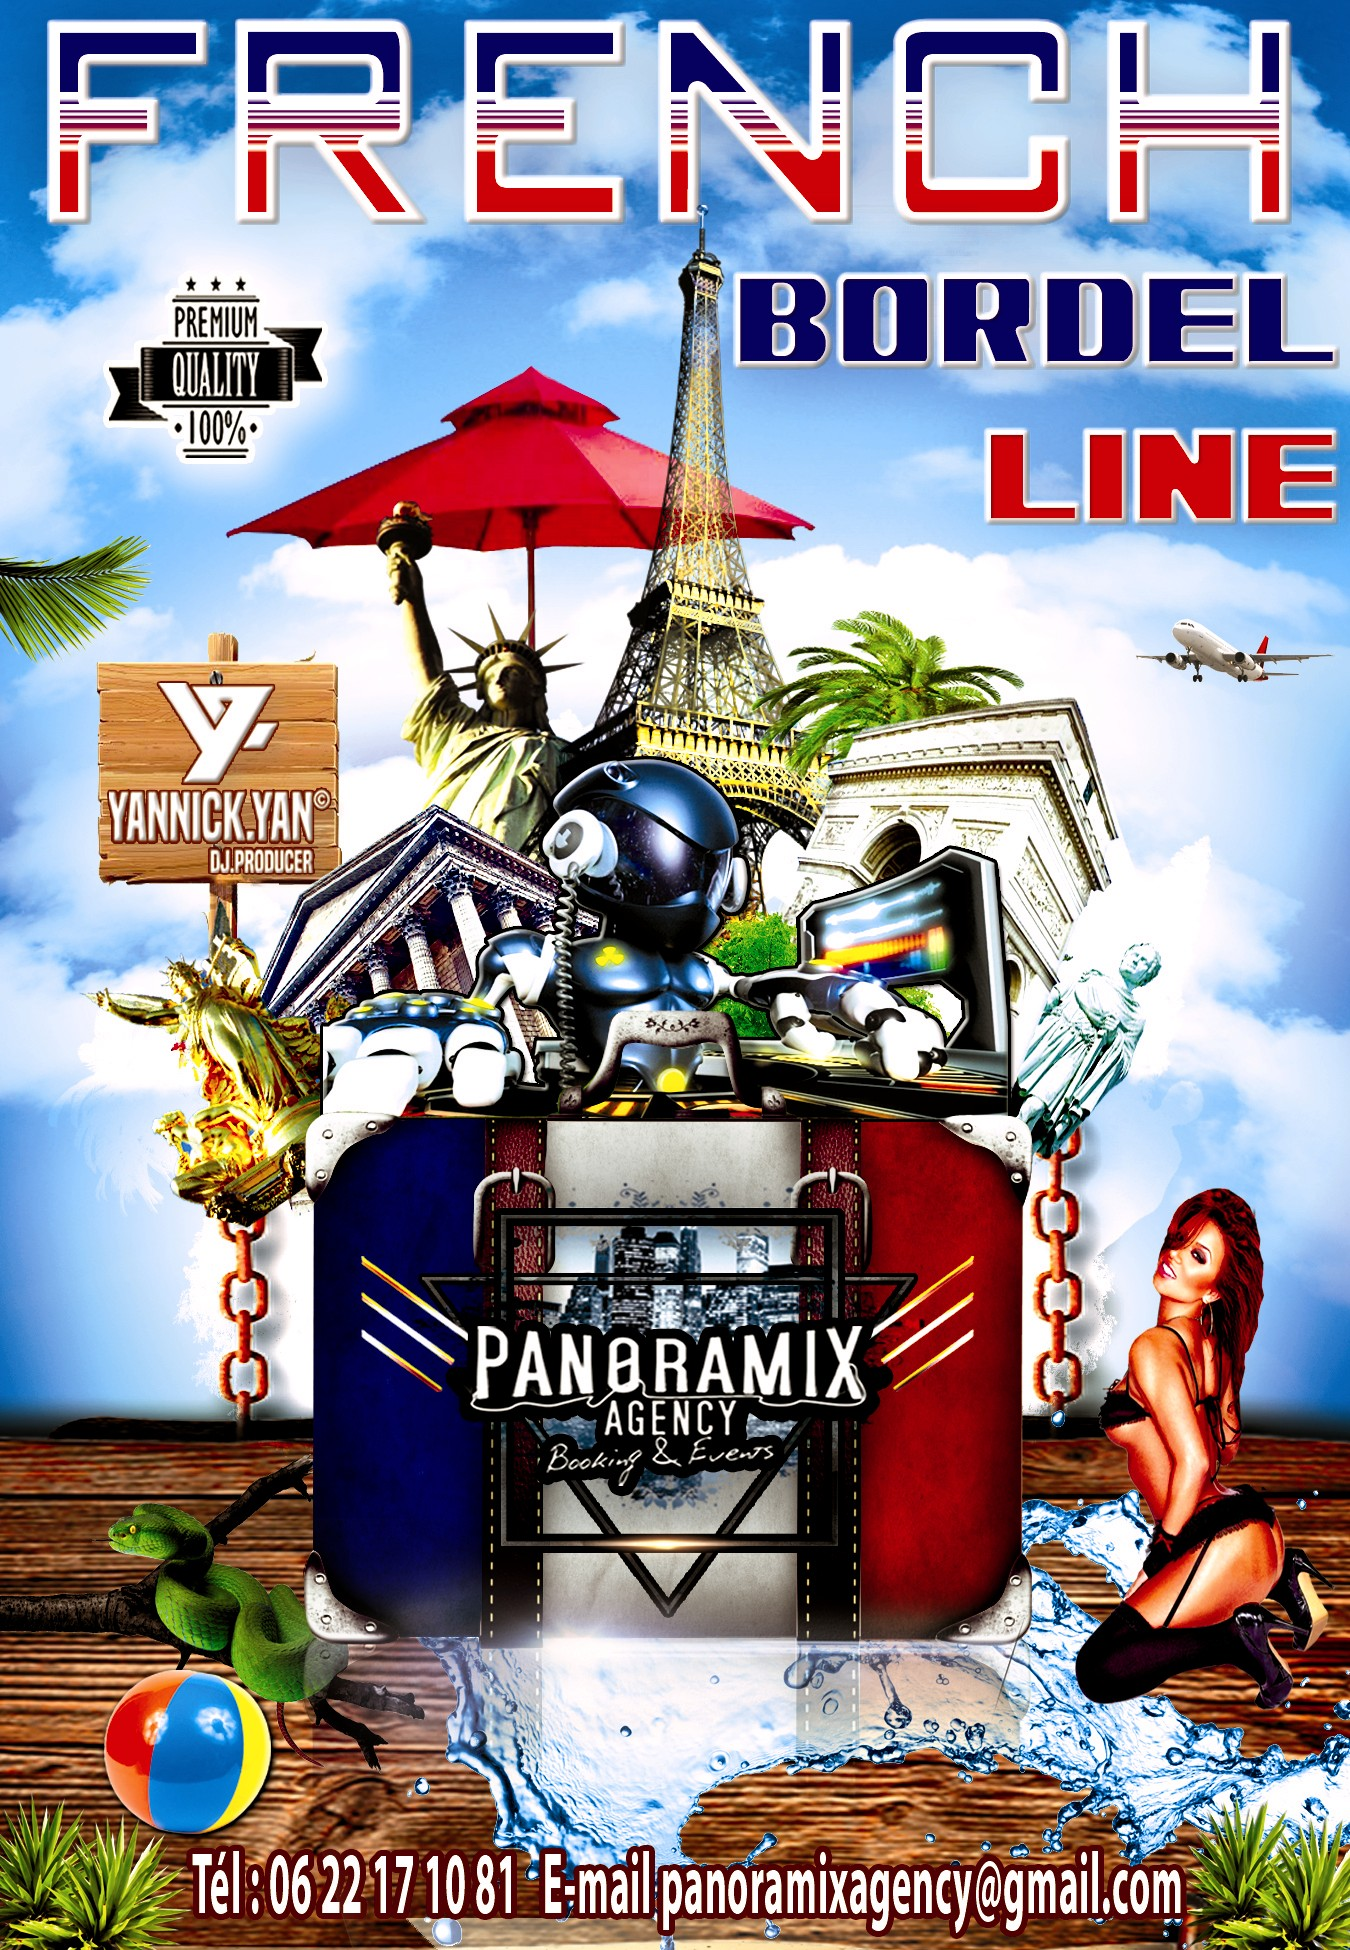 http://panoramix-radio-station.com/wp-content/uploads/2017/04/FRENCH-BORDEL-fini-bleu.jpg